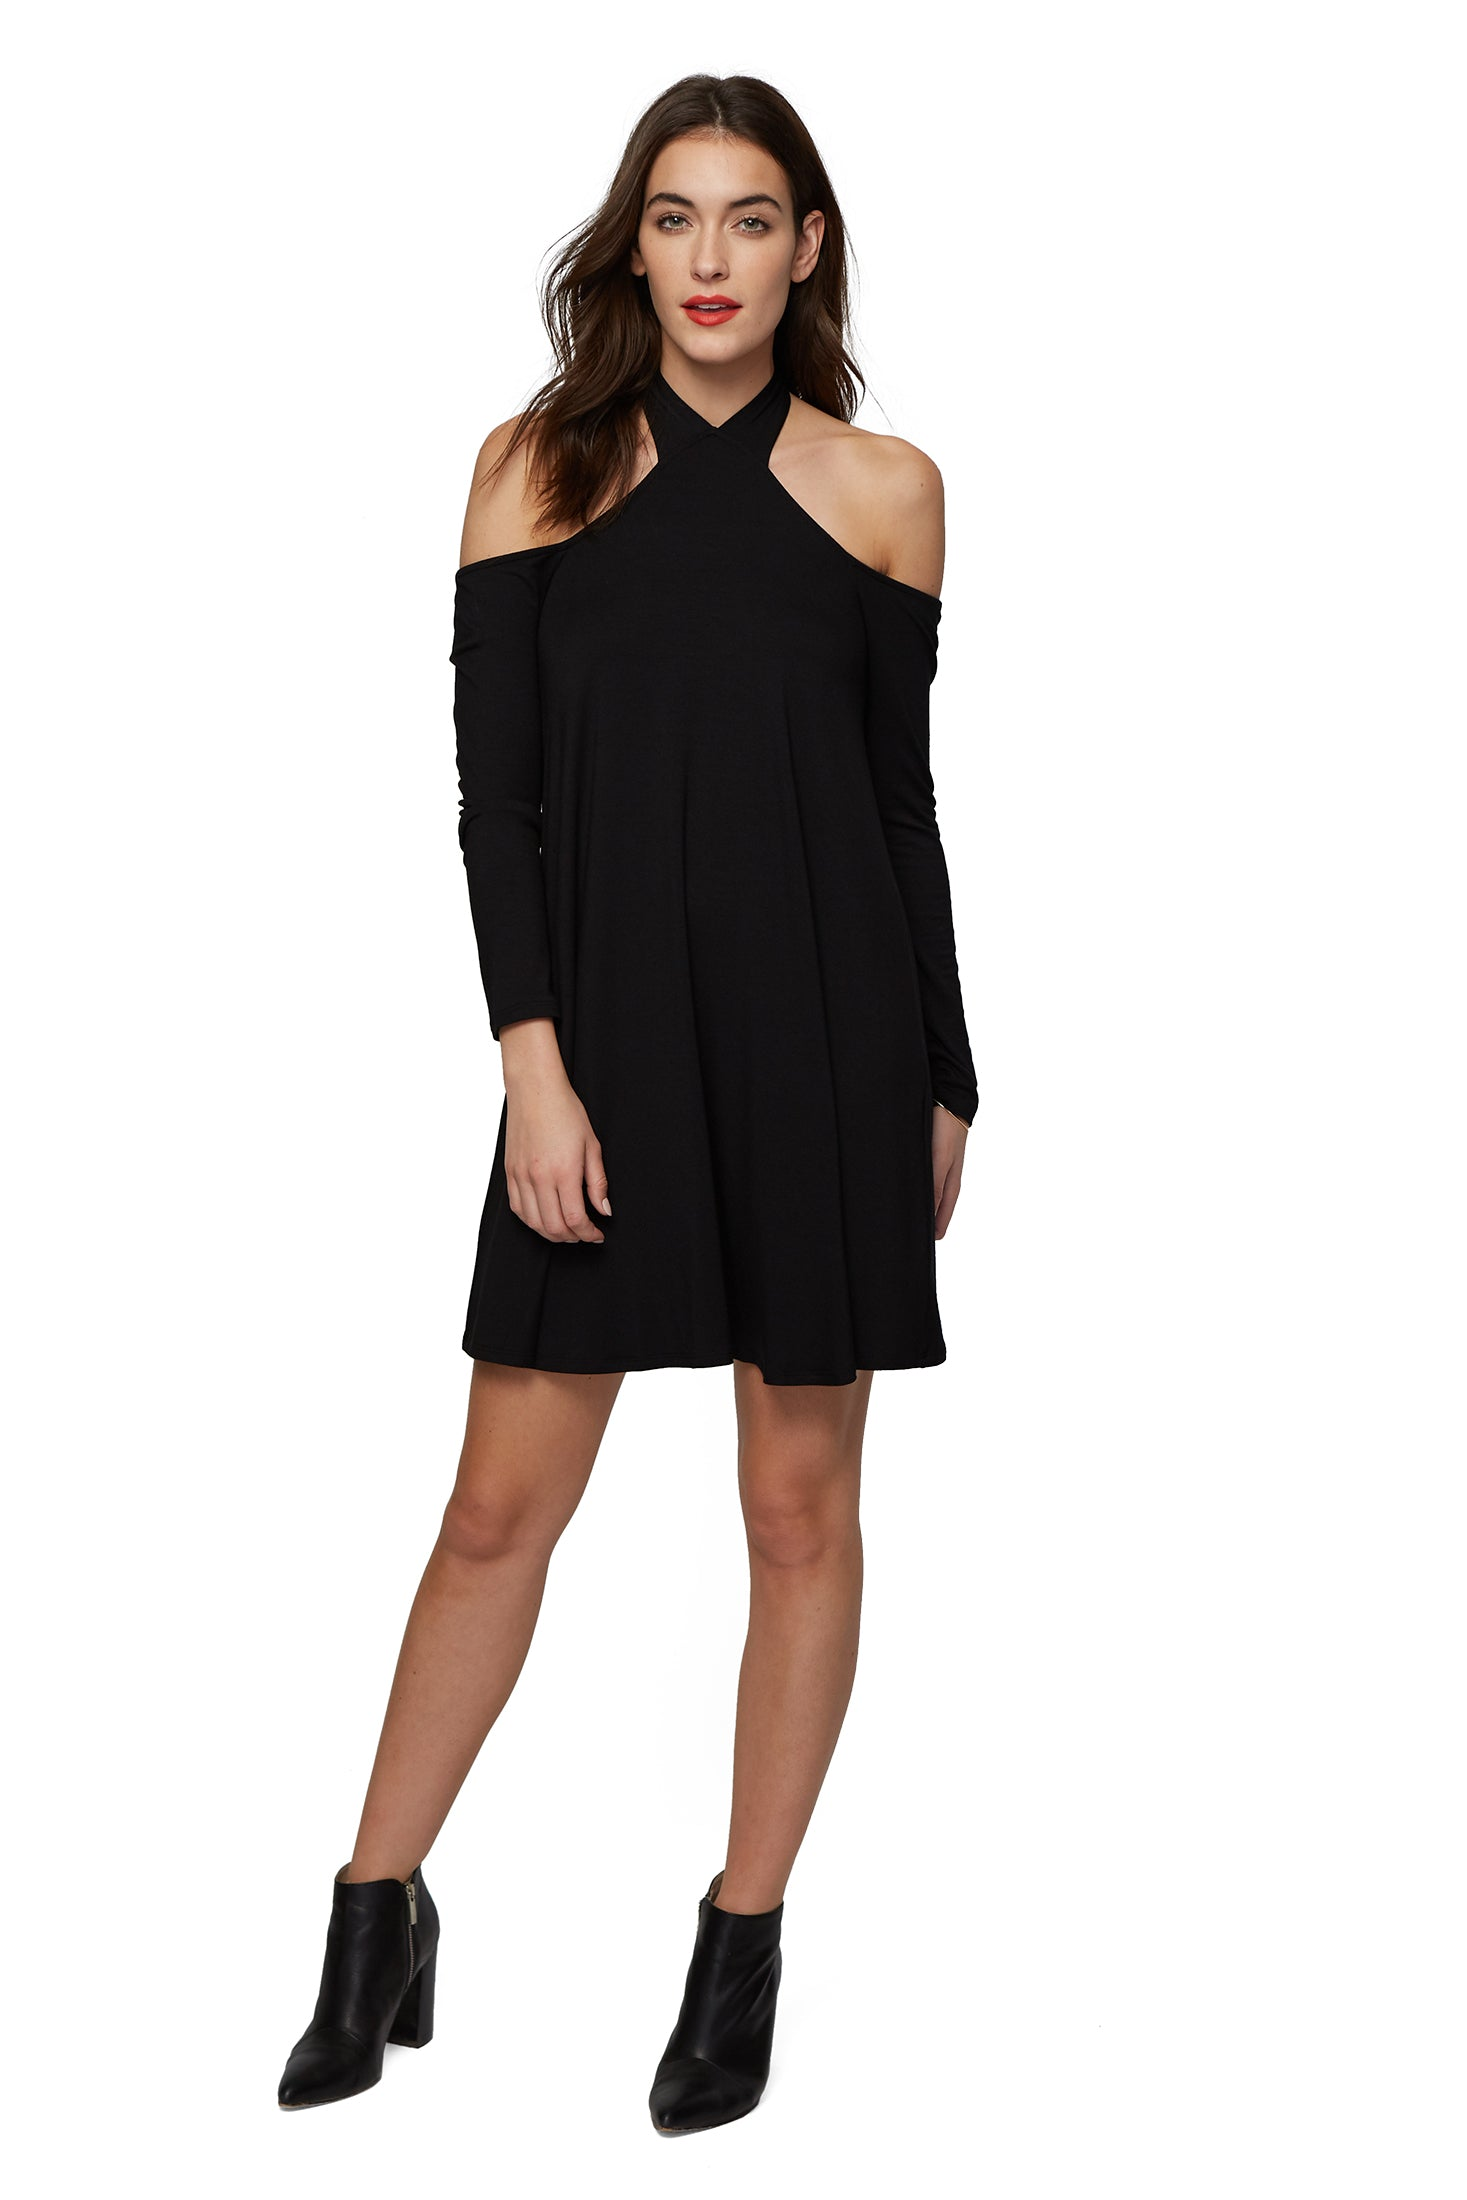 Paulee Dress - Black